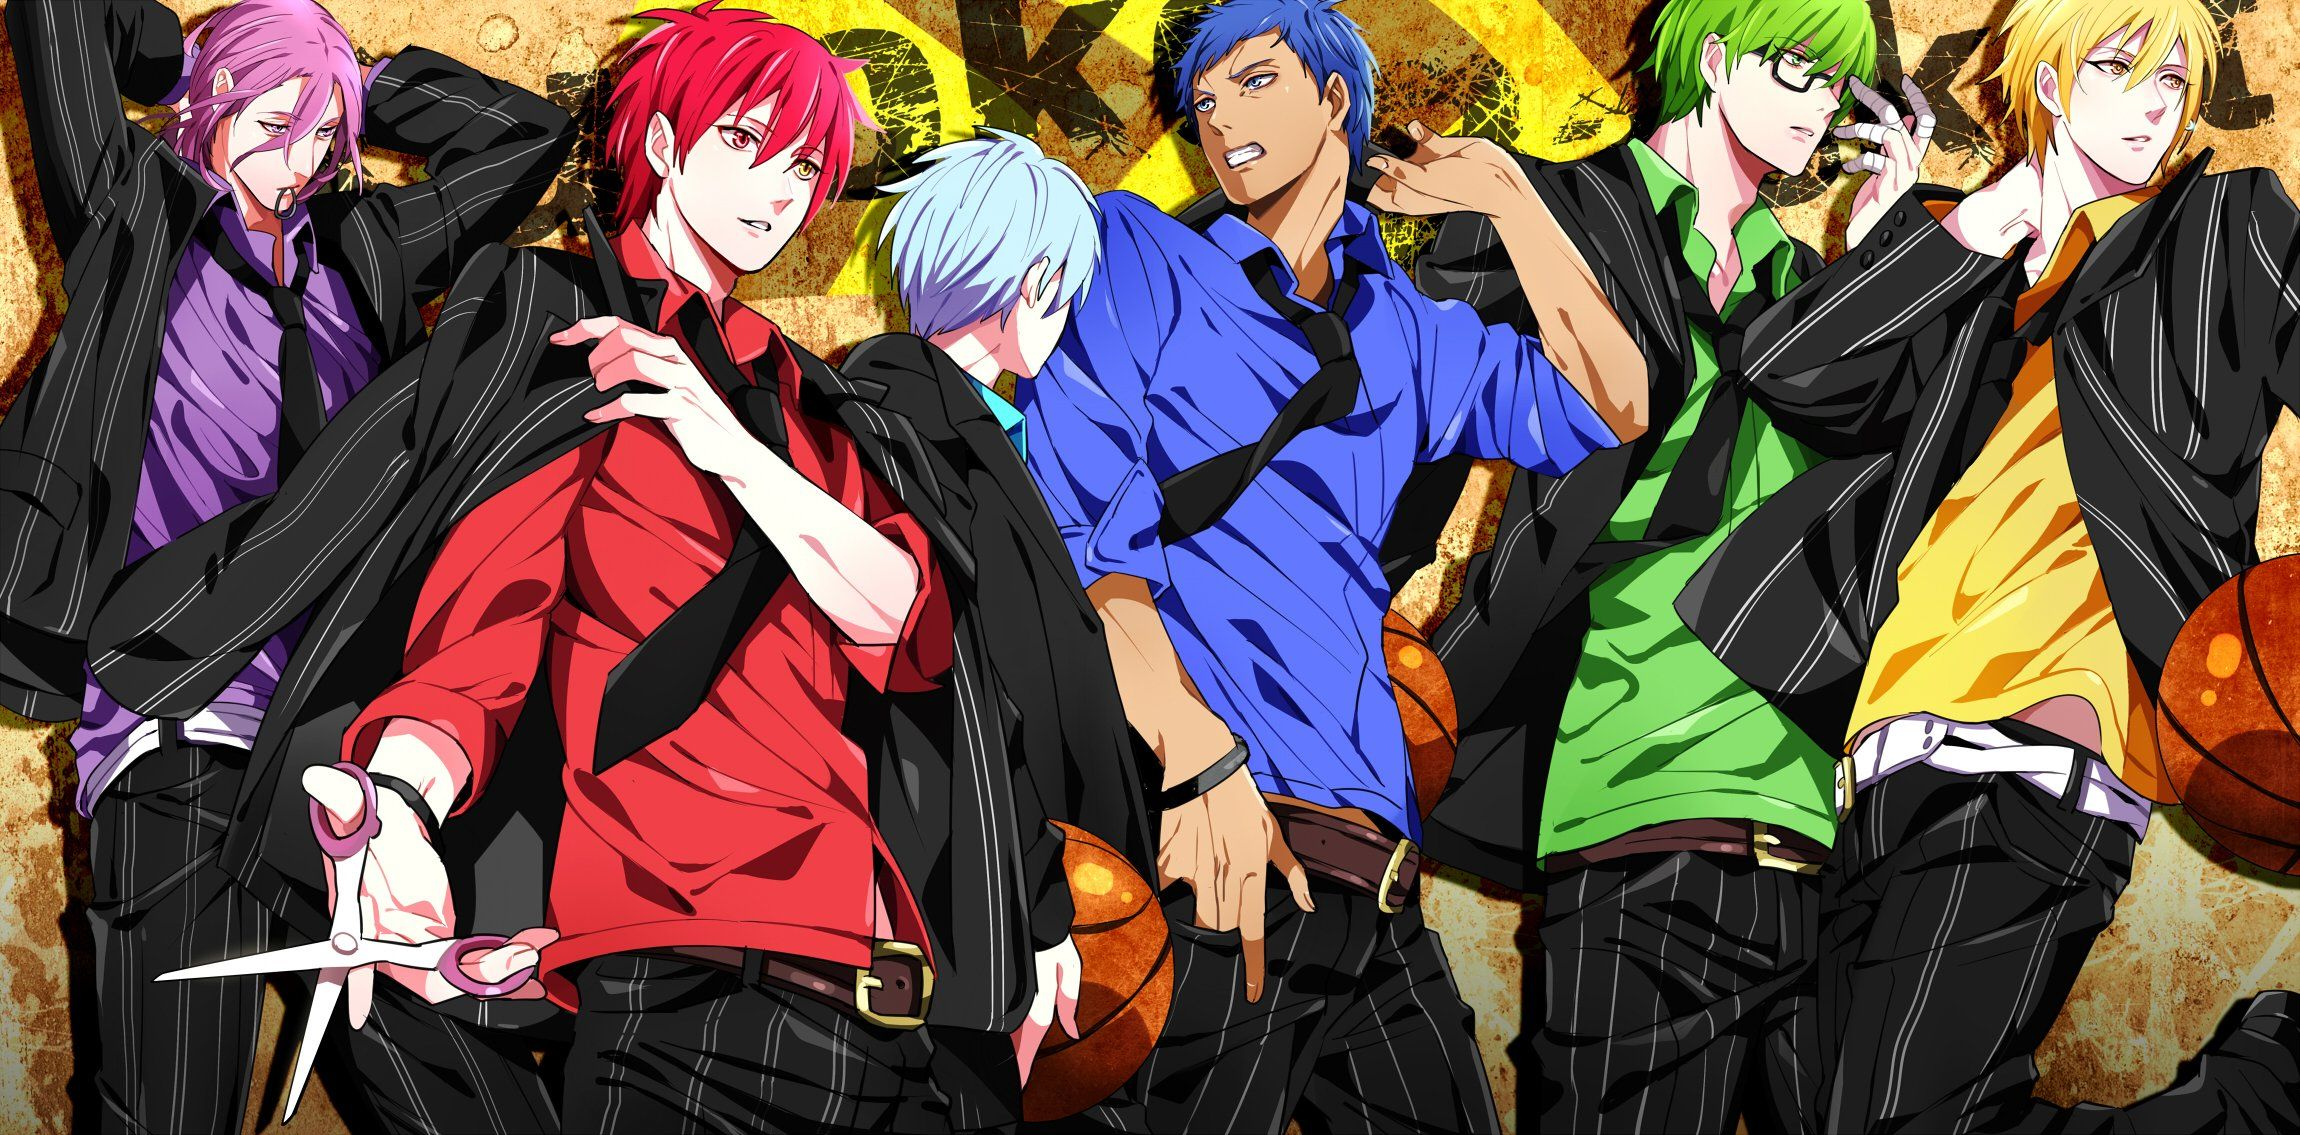 Anime Green Hair Glasses Blue Hair Zone Blue Eyes Violet Eyes Blonde Hair Purple Hair Boys Red Eyes Red Hair Basket In 2020 Kuroko S Basketball Kuroko Kuroko No Basket